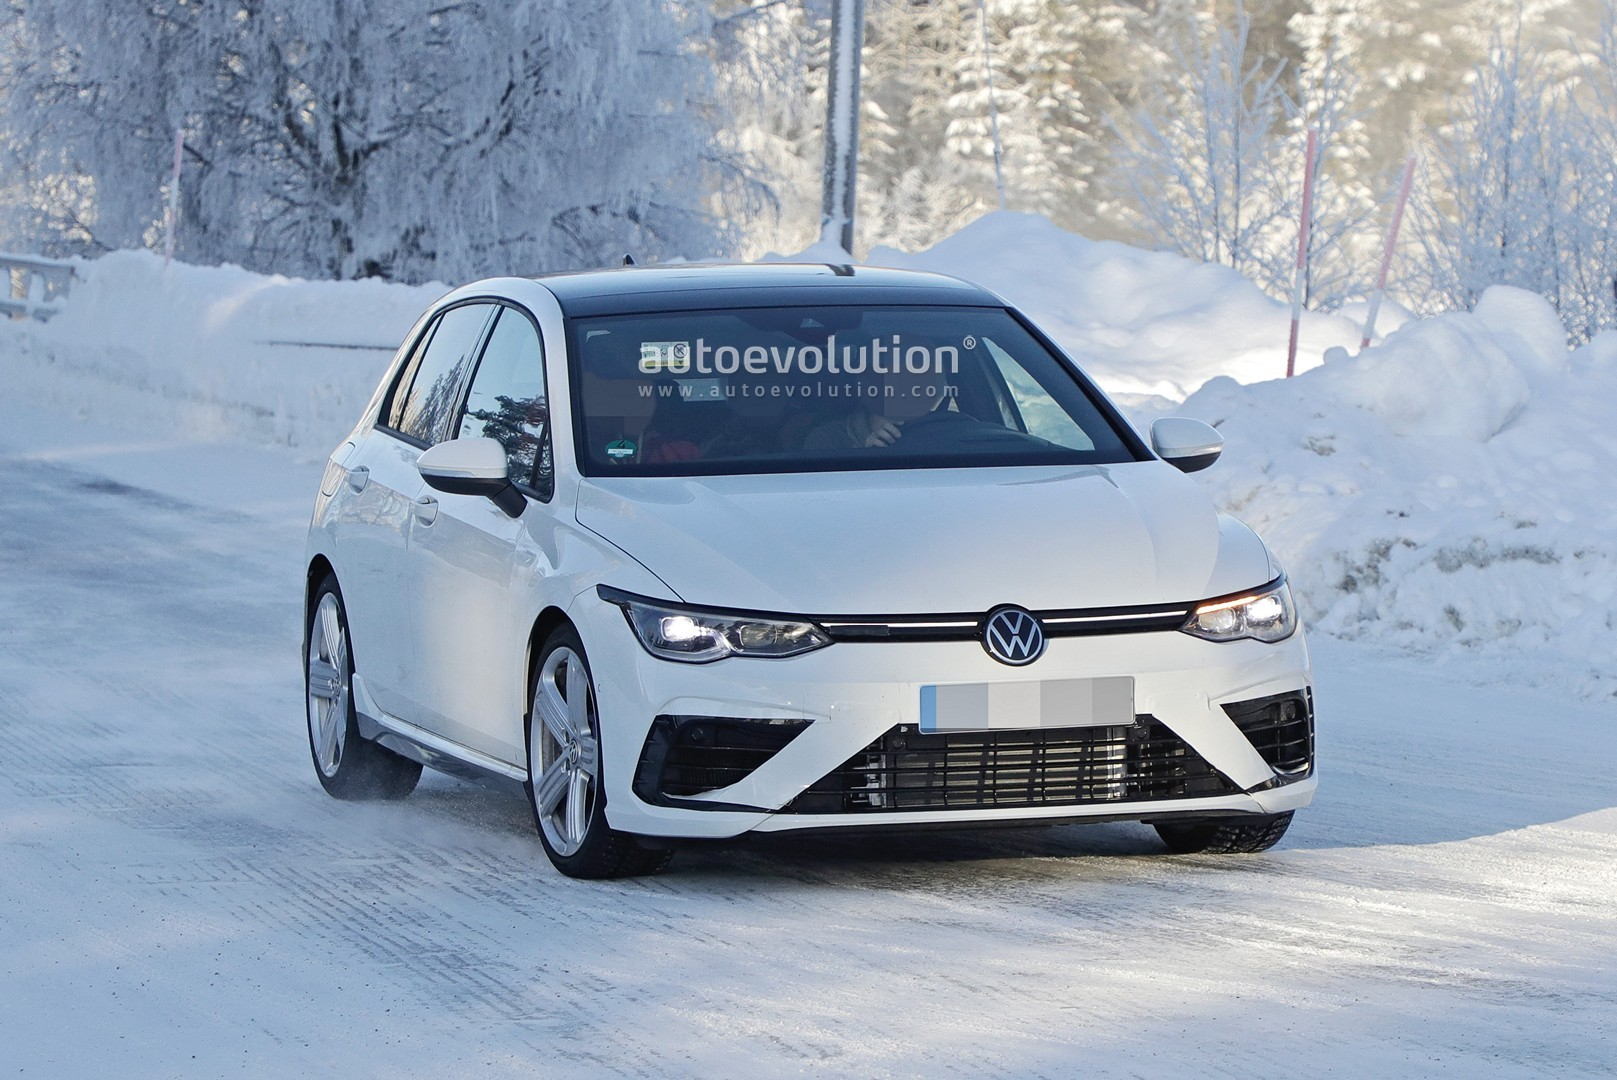 2021 volkswagen golf r spied production body looks subtle autoevolution 2021 volkswagen golf r spied